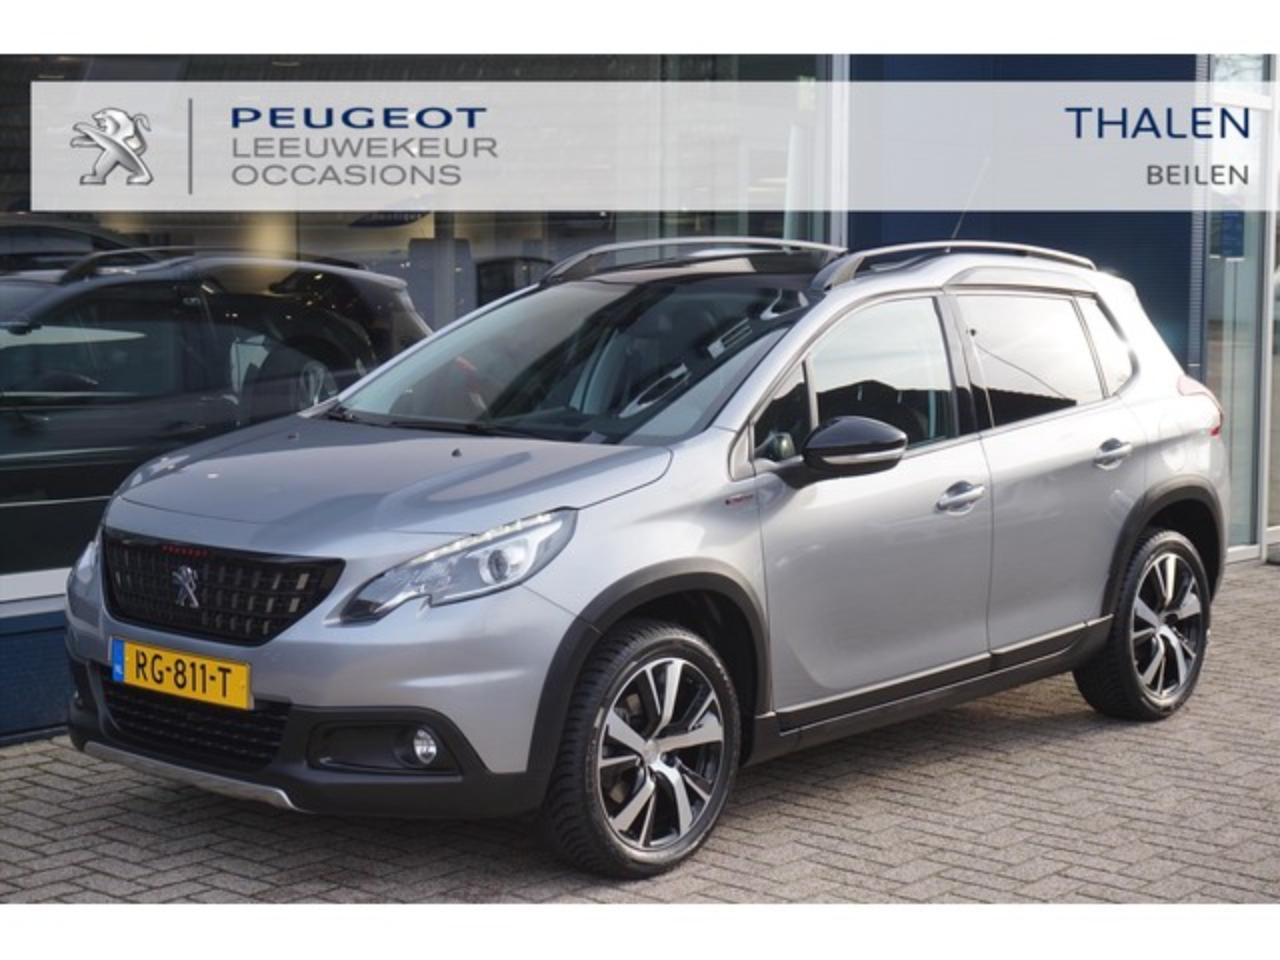 Peugeot 2008 GT LINE / LEER / CLIMA / 17 INCH ALL WEATHER BANDE